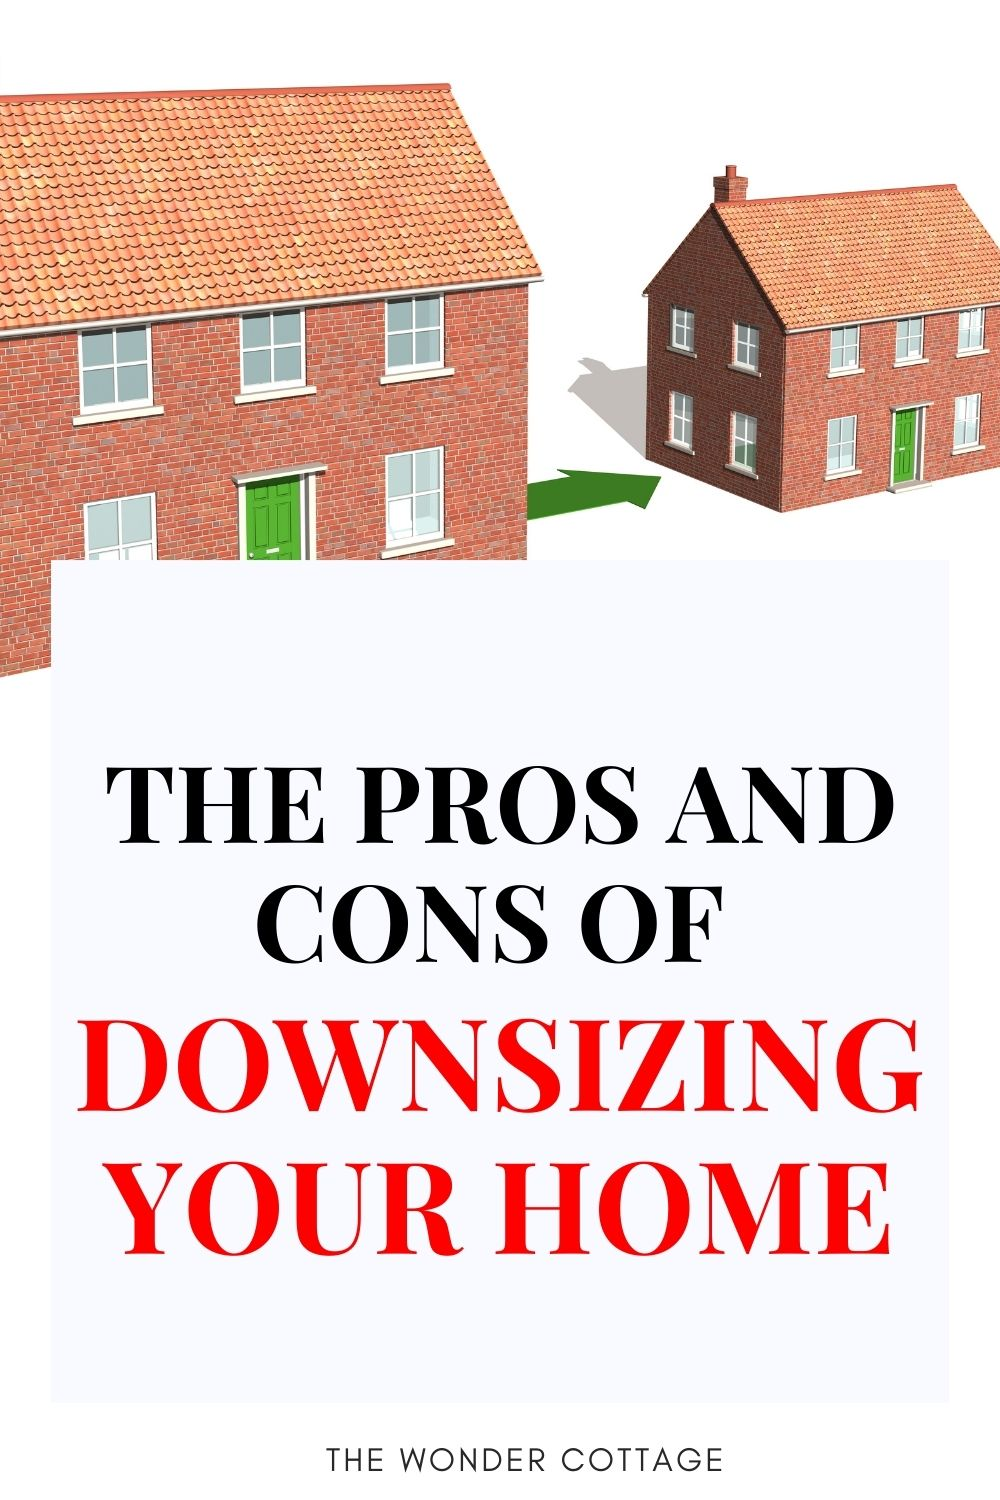 the pros and cons of downsizing your home